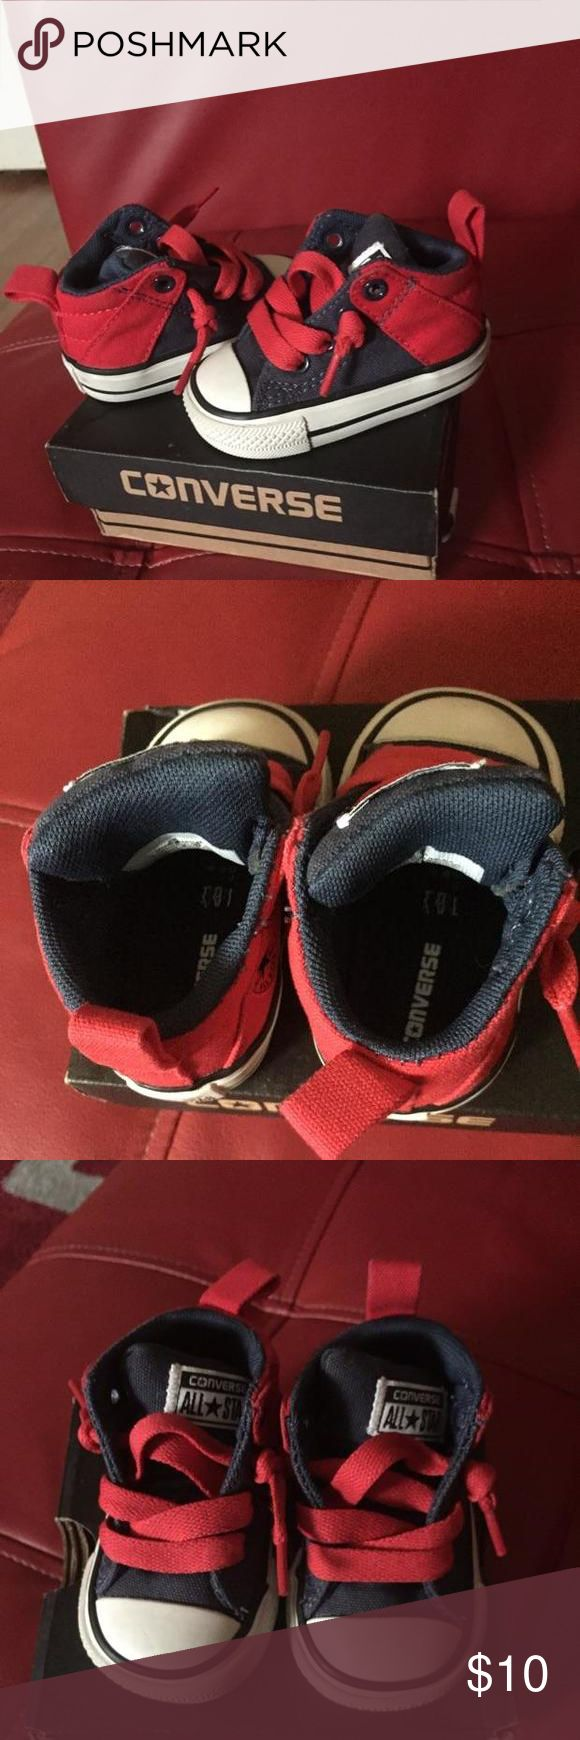 Mid top Chucks Super cute and darn near brand new mid top chucks they are navy/red and are a staple in any little boy closet.  The box is included. Converse Shoes